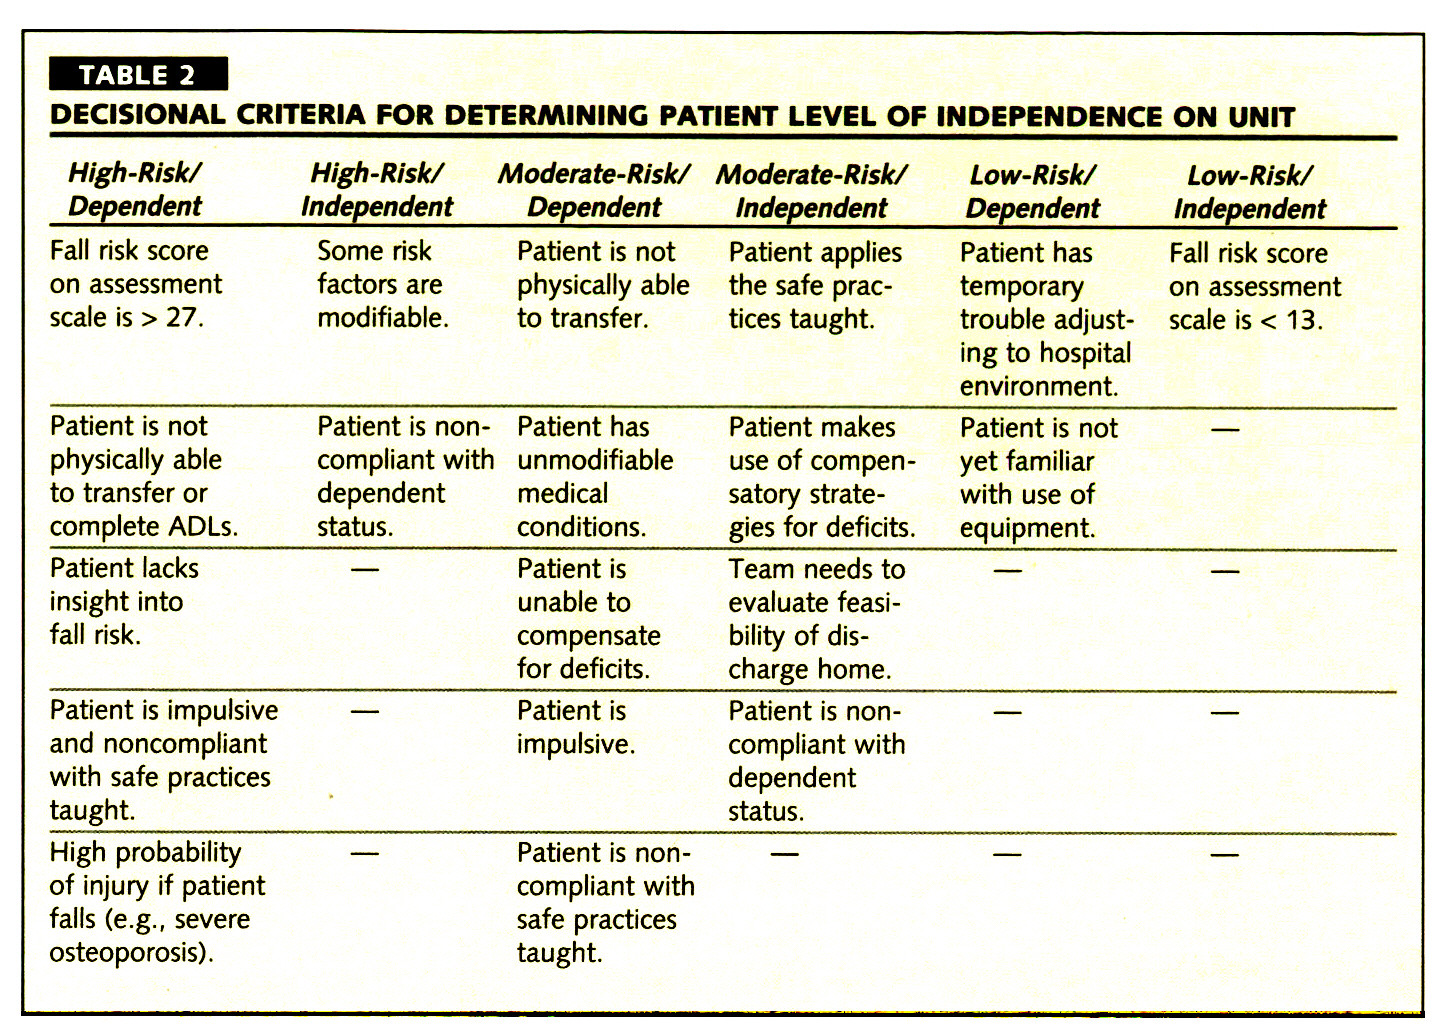 TABLE 2DECISIONAL CRITERIA FOR DETERMINING PATIENT LEVEL OF INDEPENDENCE ON UNIT